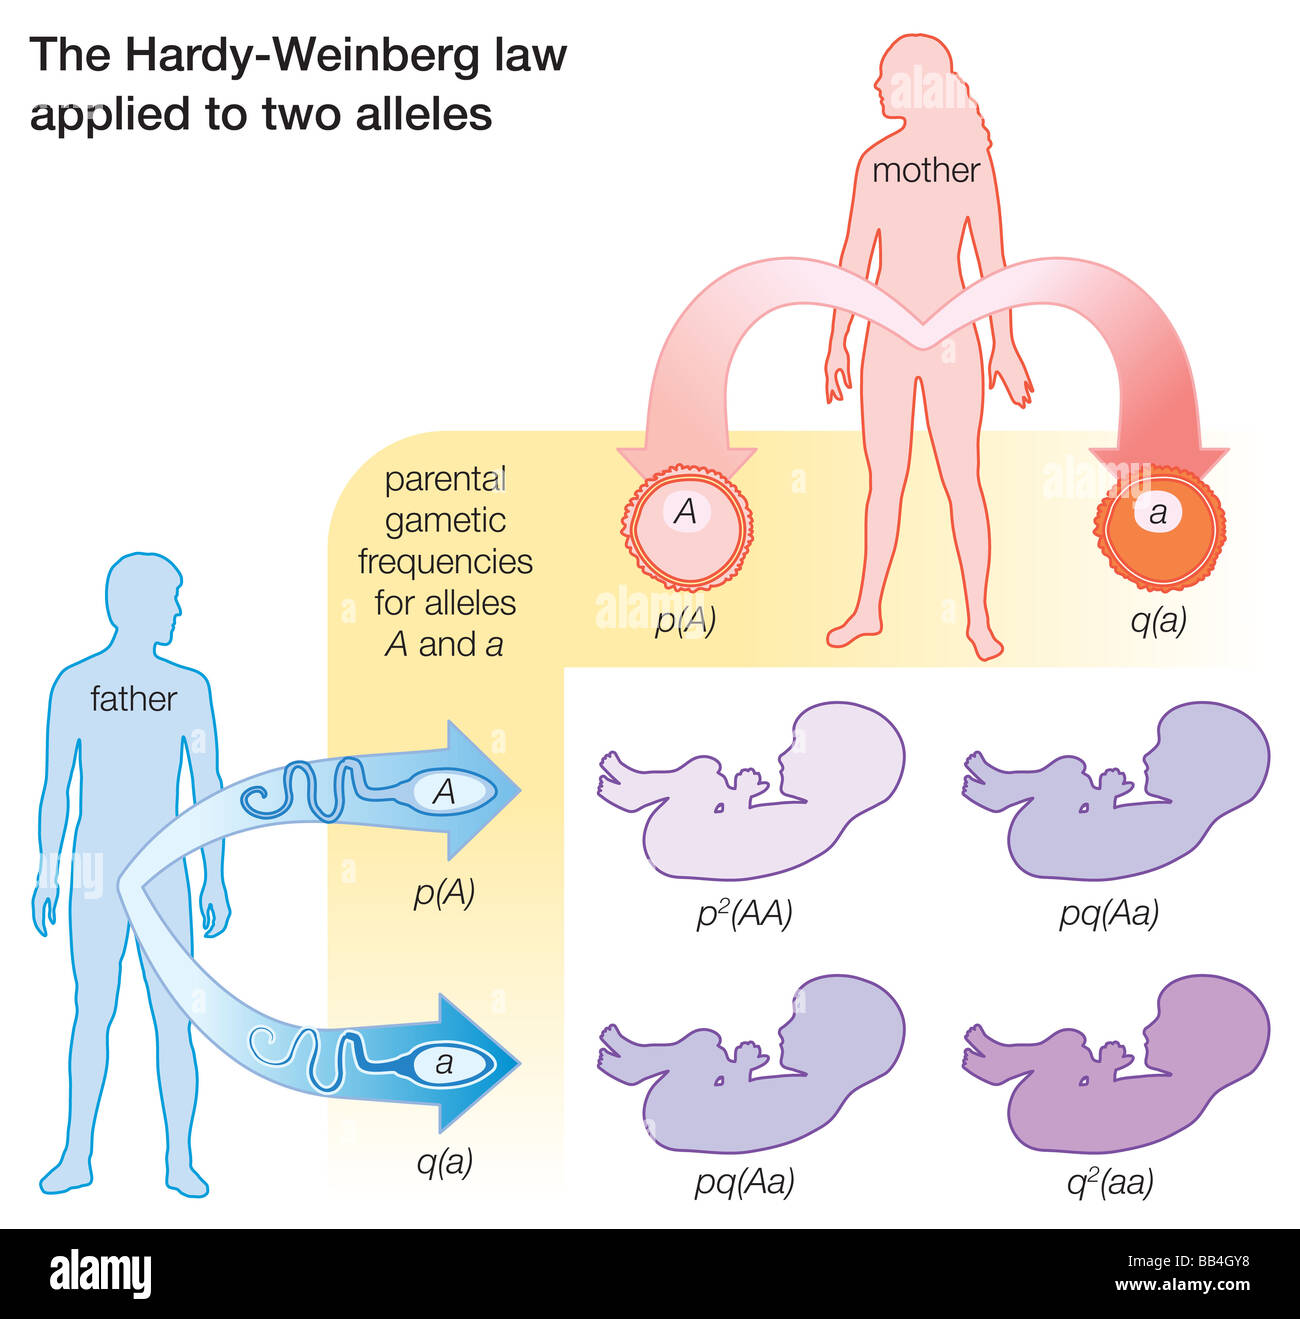 The Hardy-Weinberg Law applied to two alleles. Stock Photo